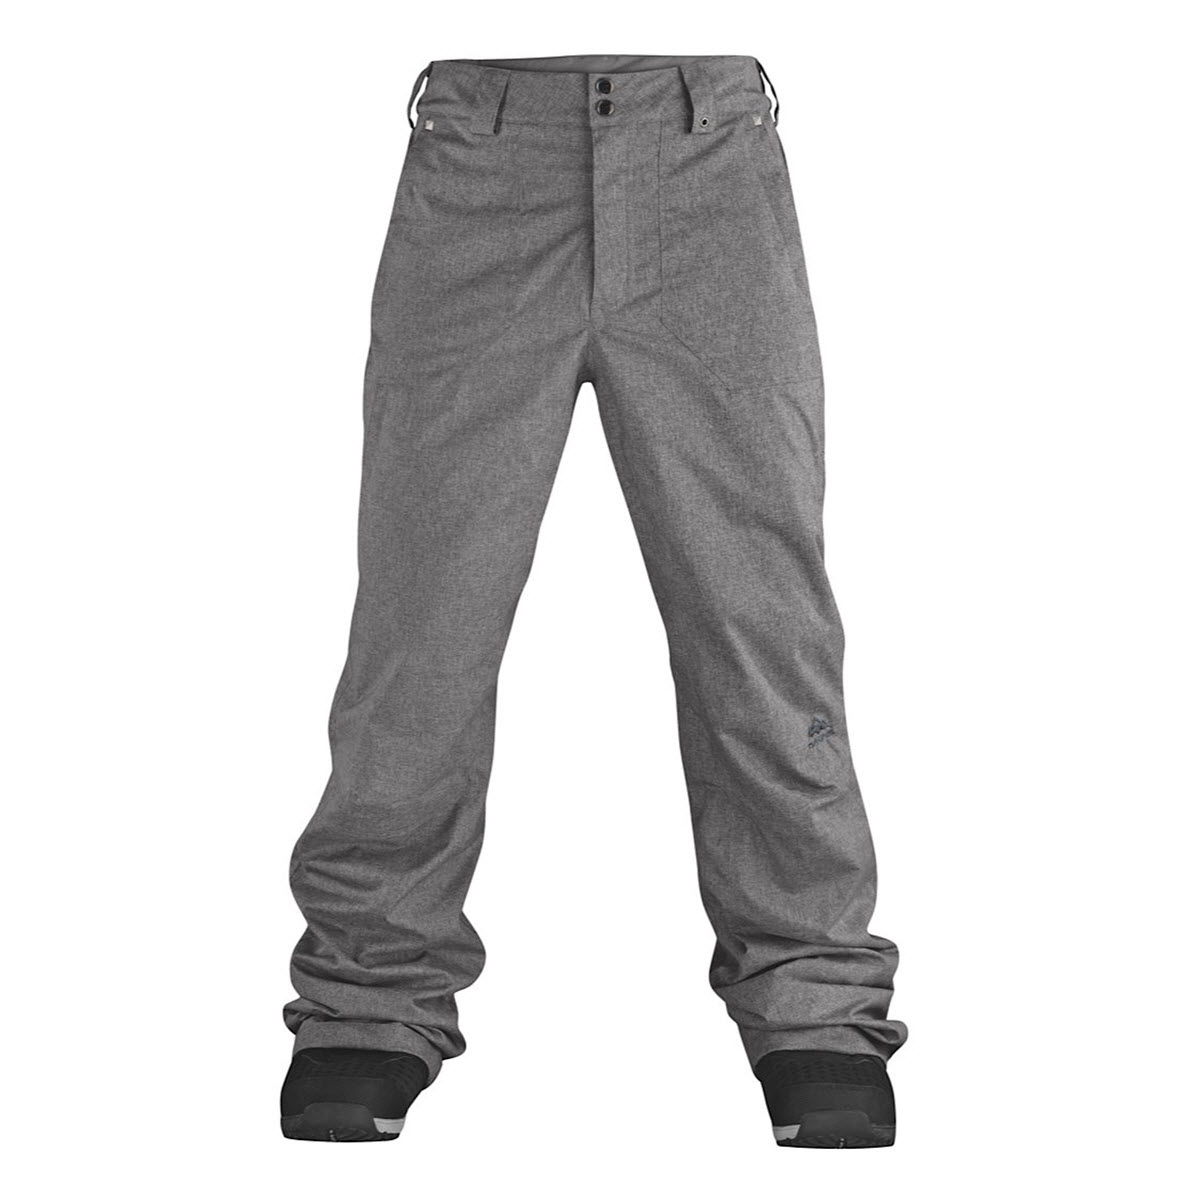 Dakine Mens Treeline Snowboard Pants 2014 Grey Heather Medium